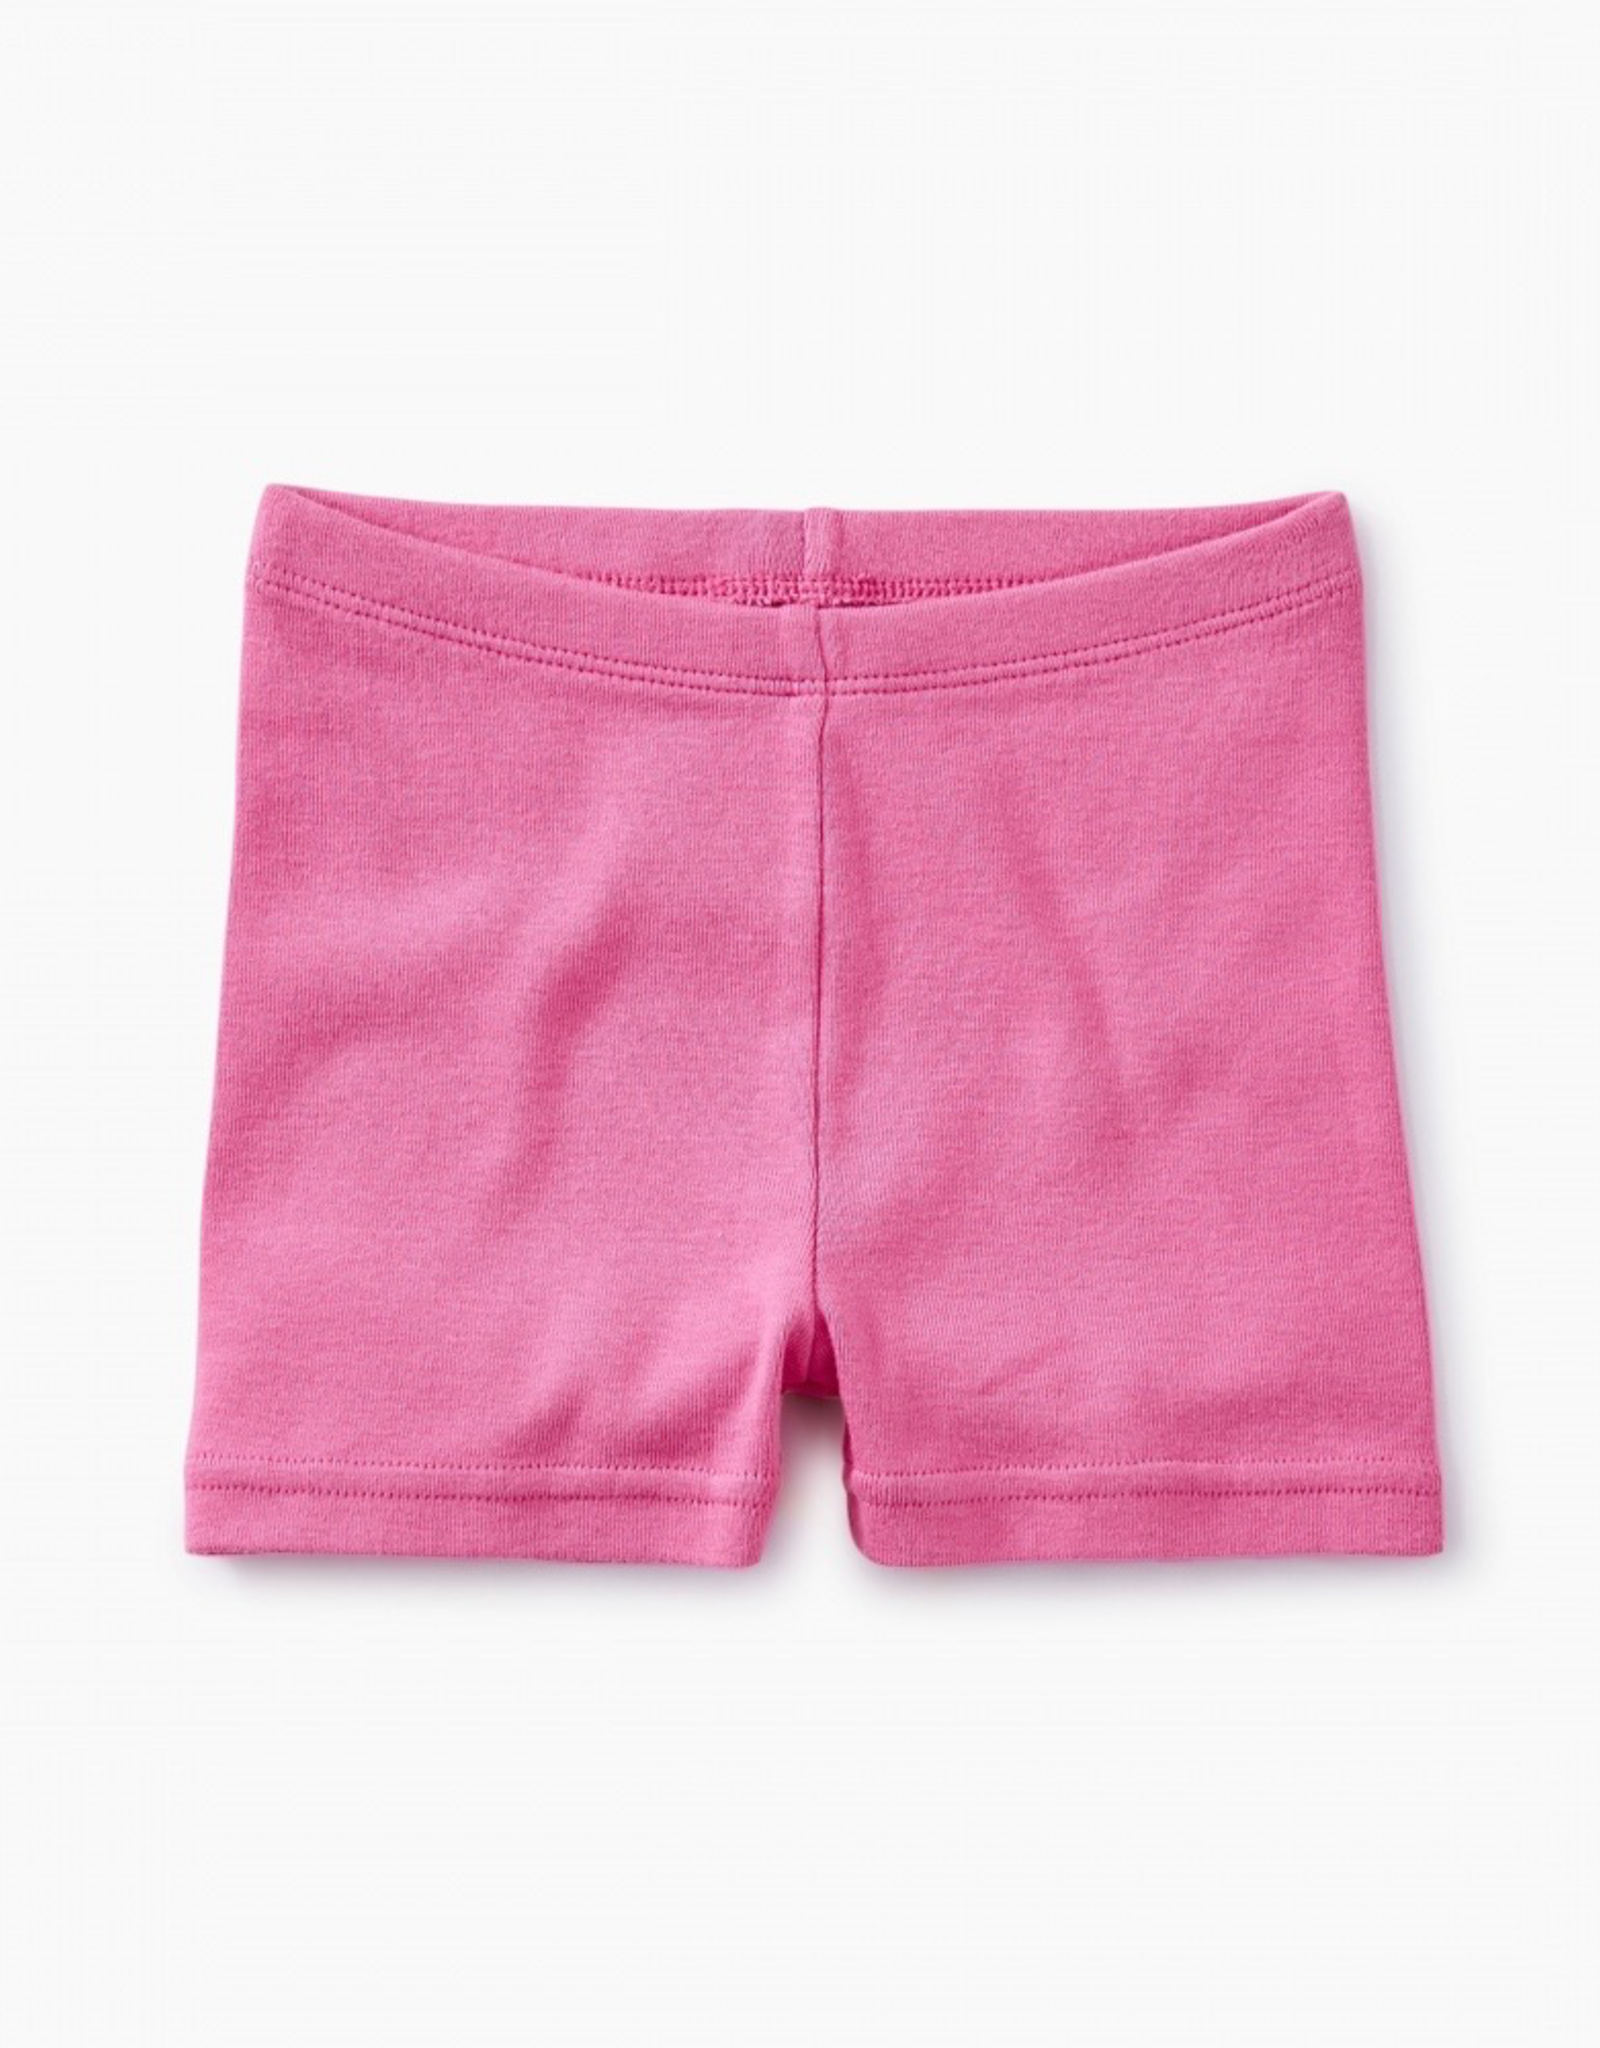 Tea Collection Solid Somersault Shorts in Sweet Pea for Girl